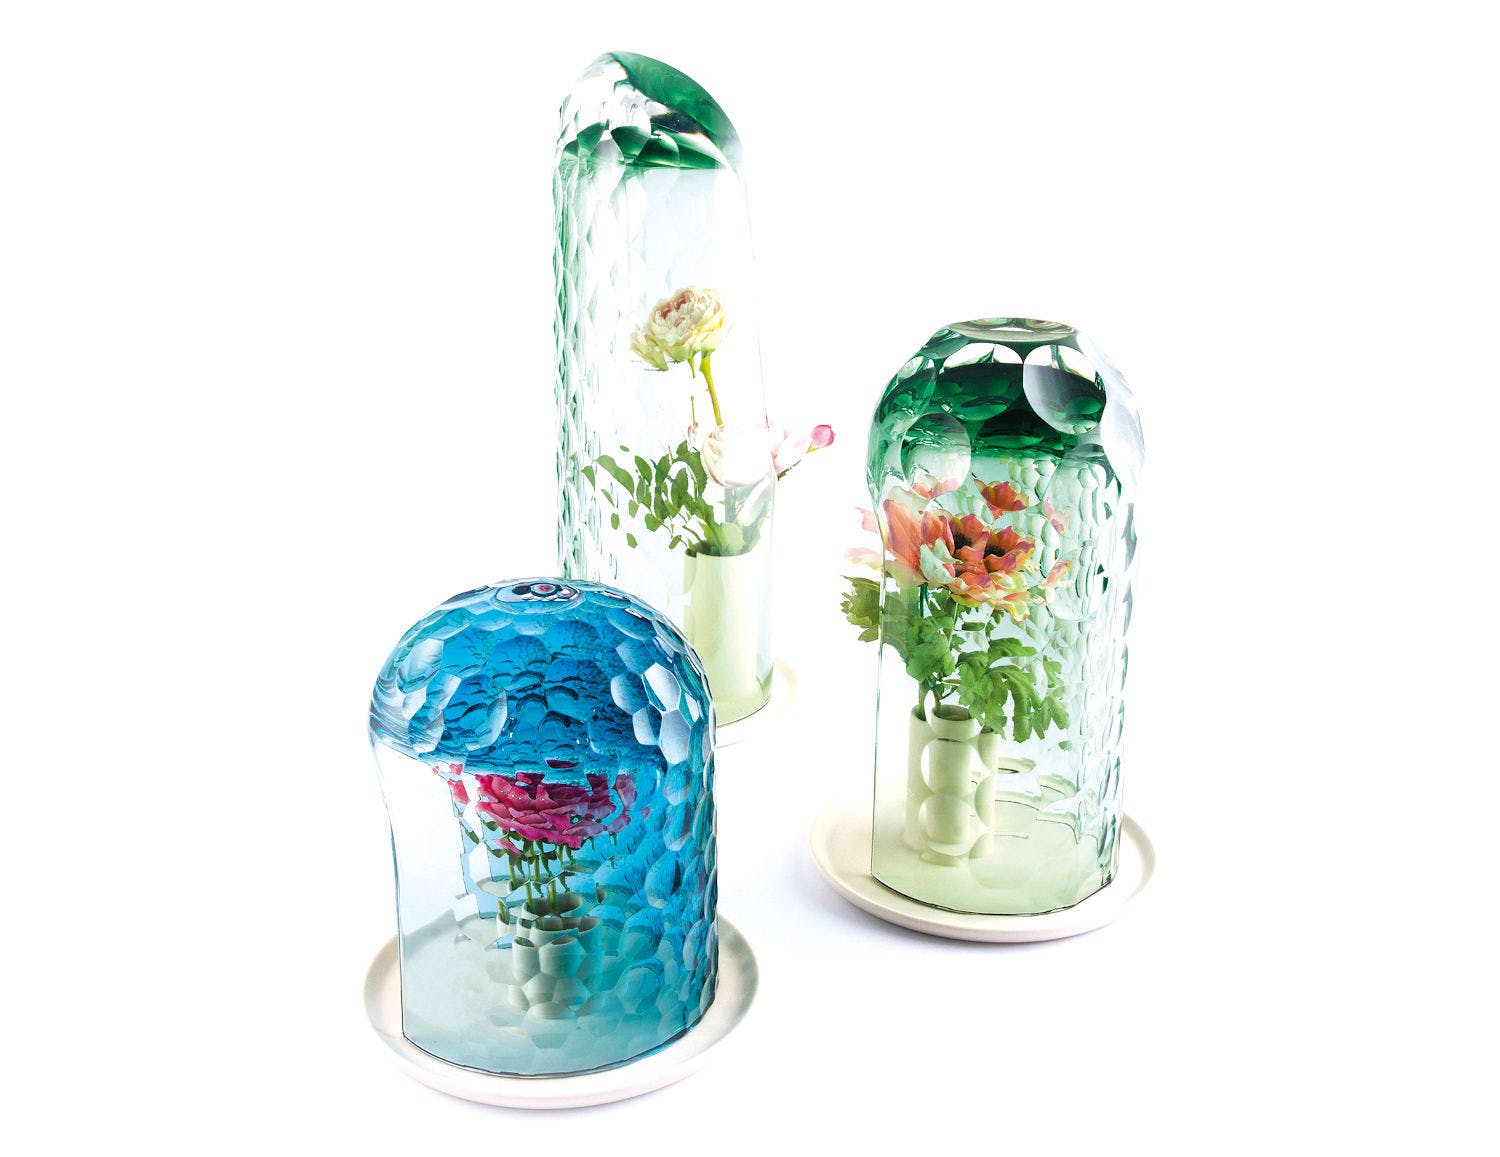 Image of 1.OP Vase by Bilge Nur Saltik 1 in Discover the trendiest ideas to decorate your home - Cosentino